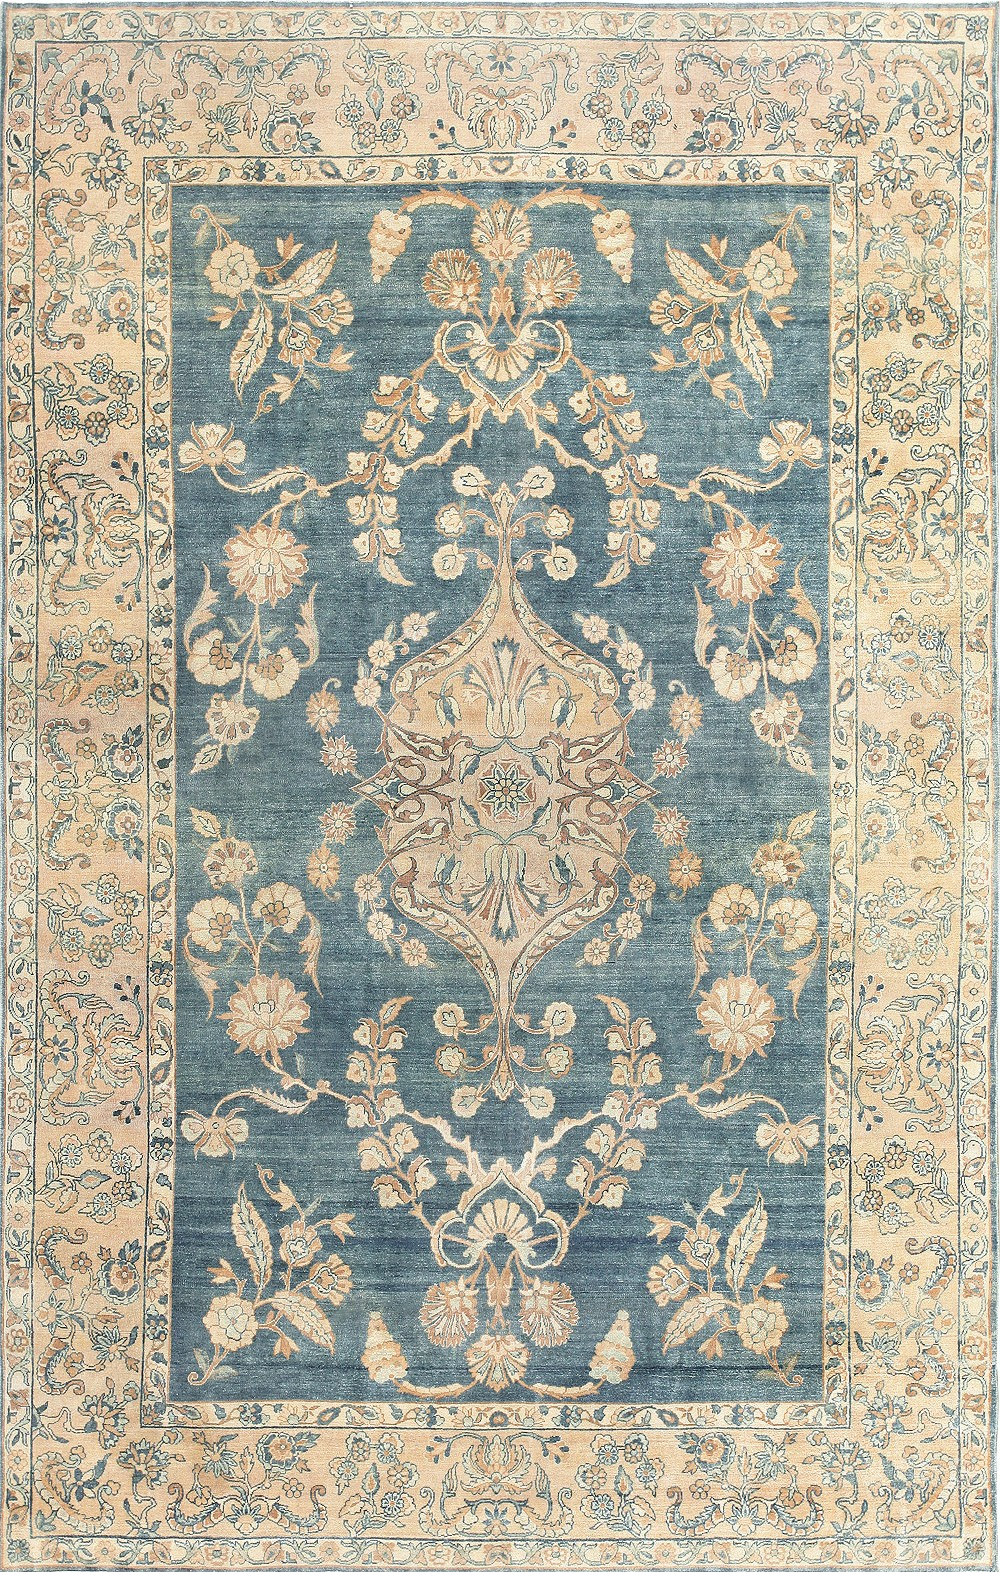 Compact Image of: Blue Persian Rug Ideas blue persian rug